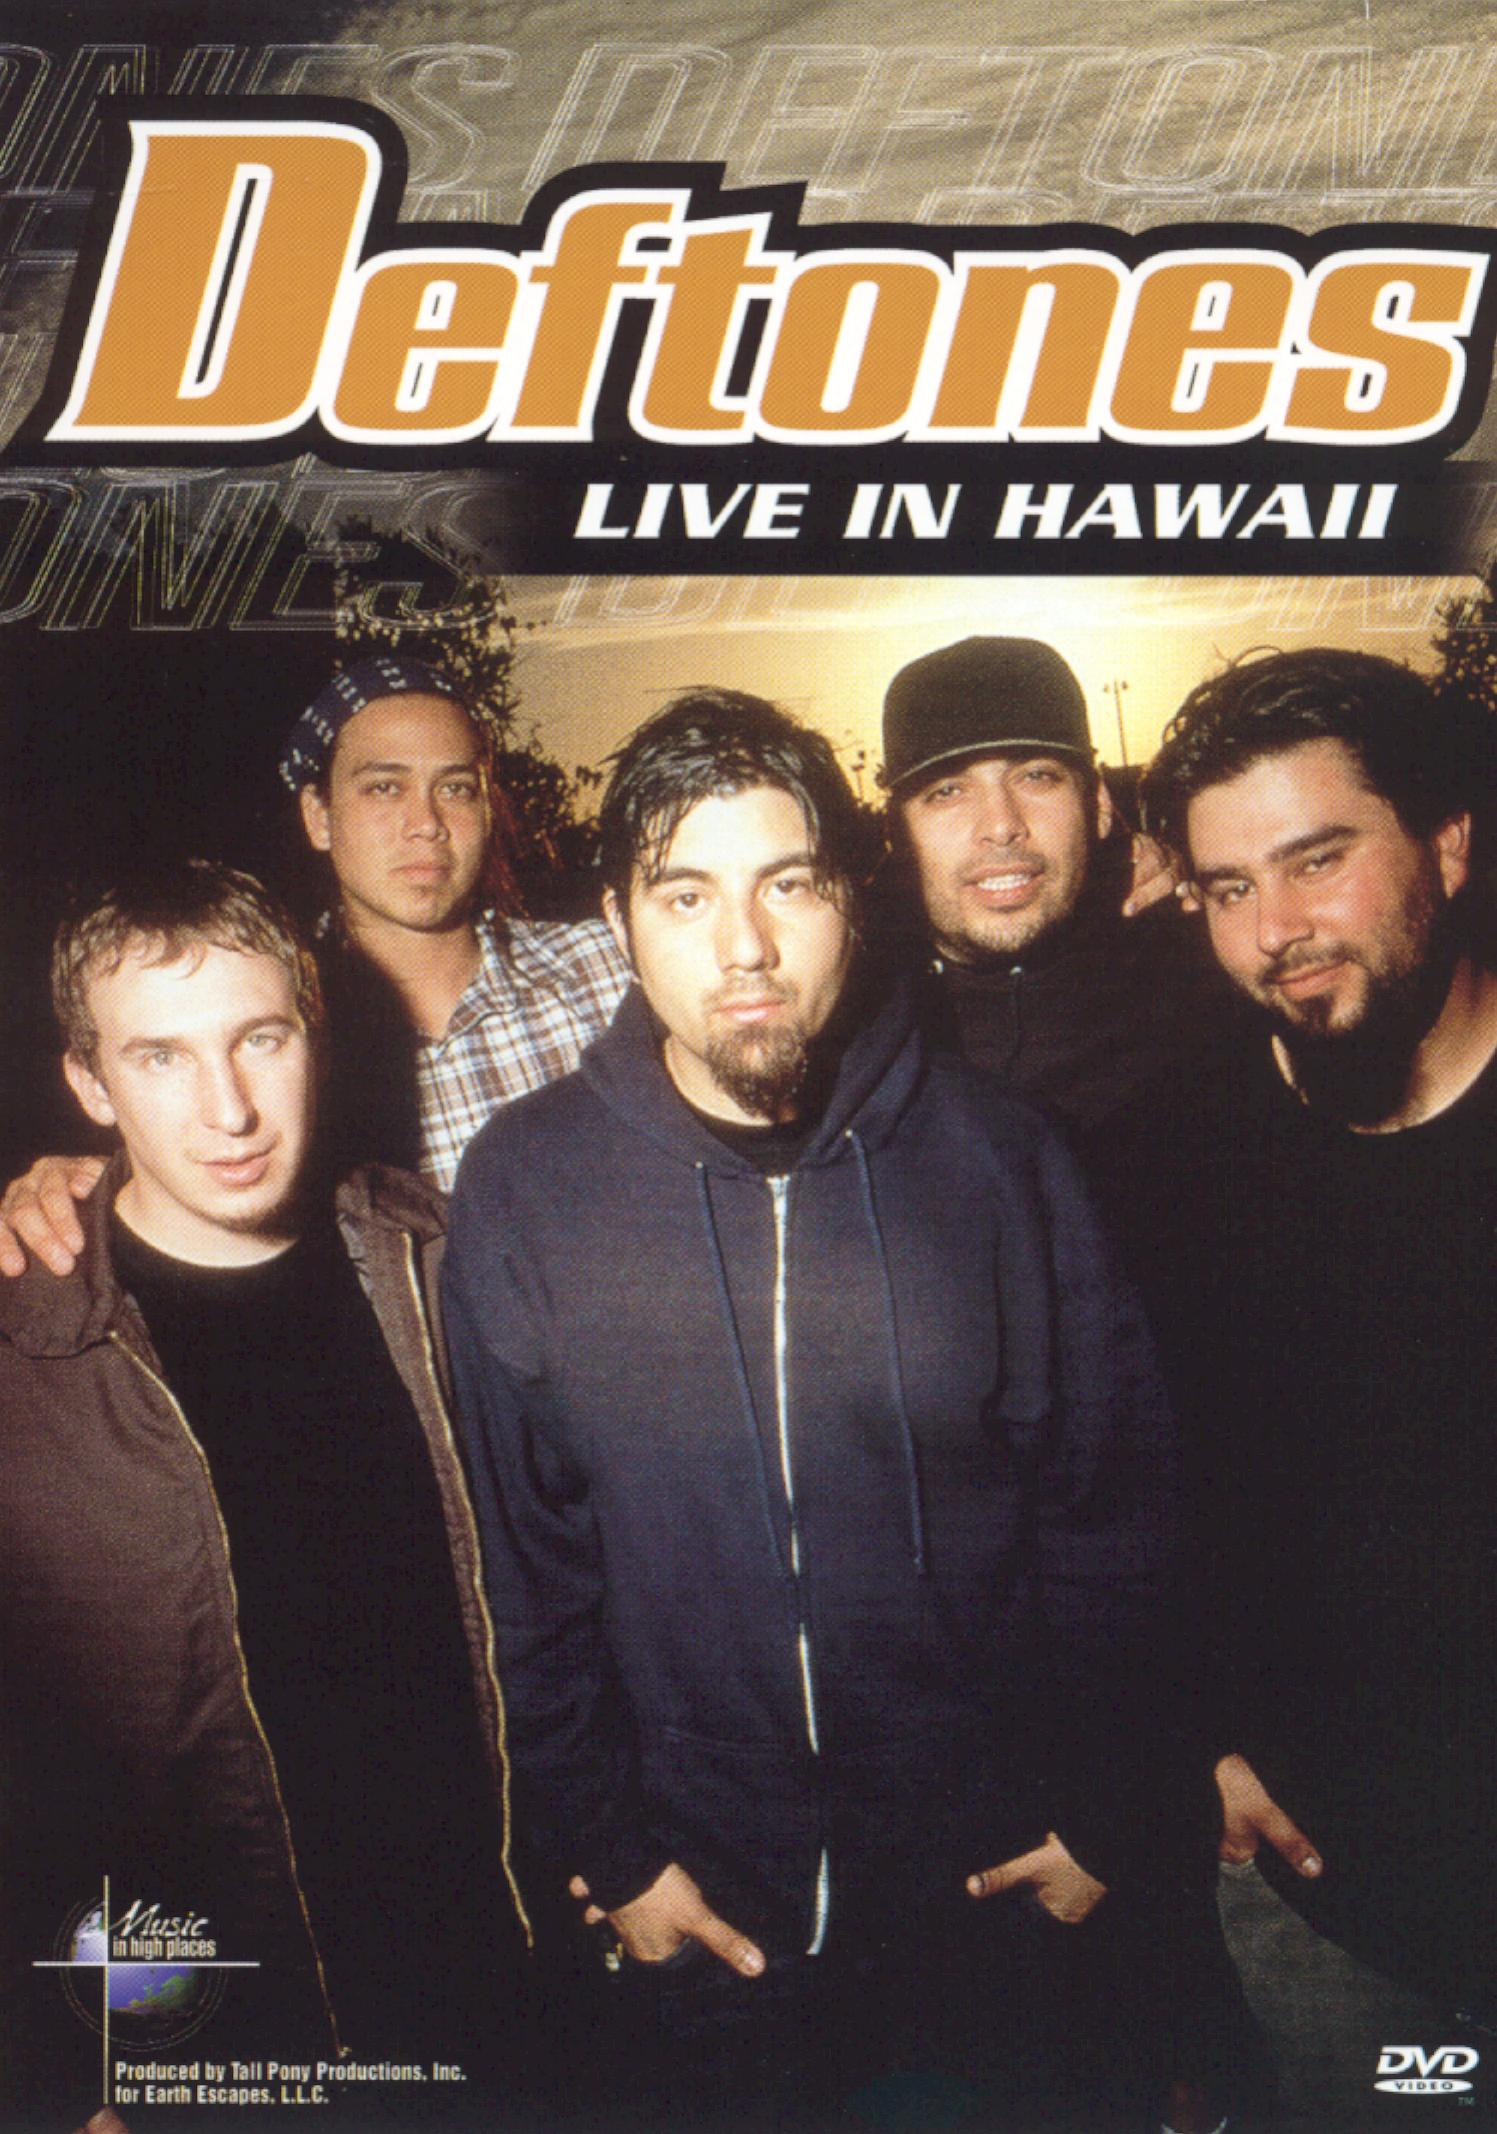 Music in High Places: Deftones - Live in Hawaii